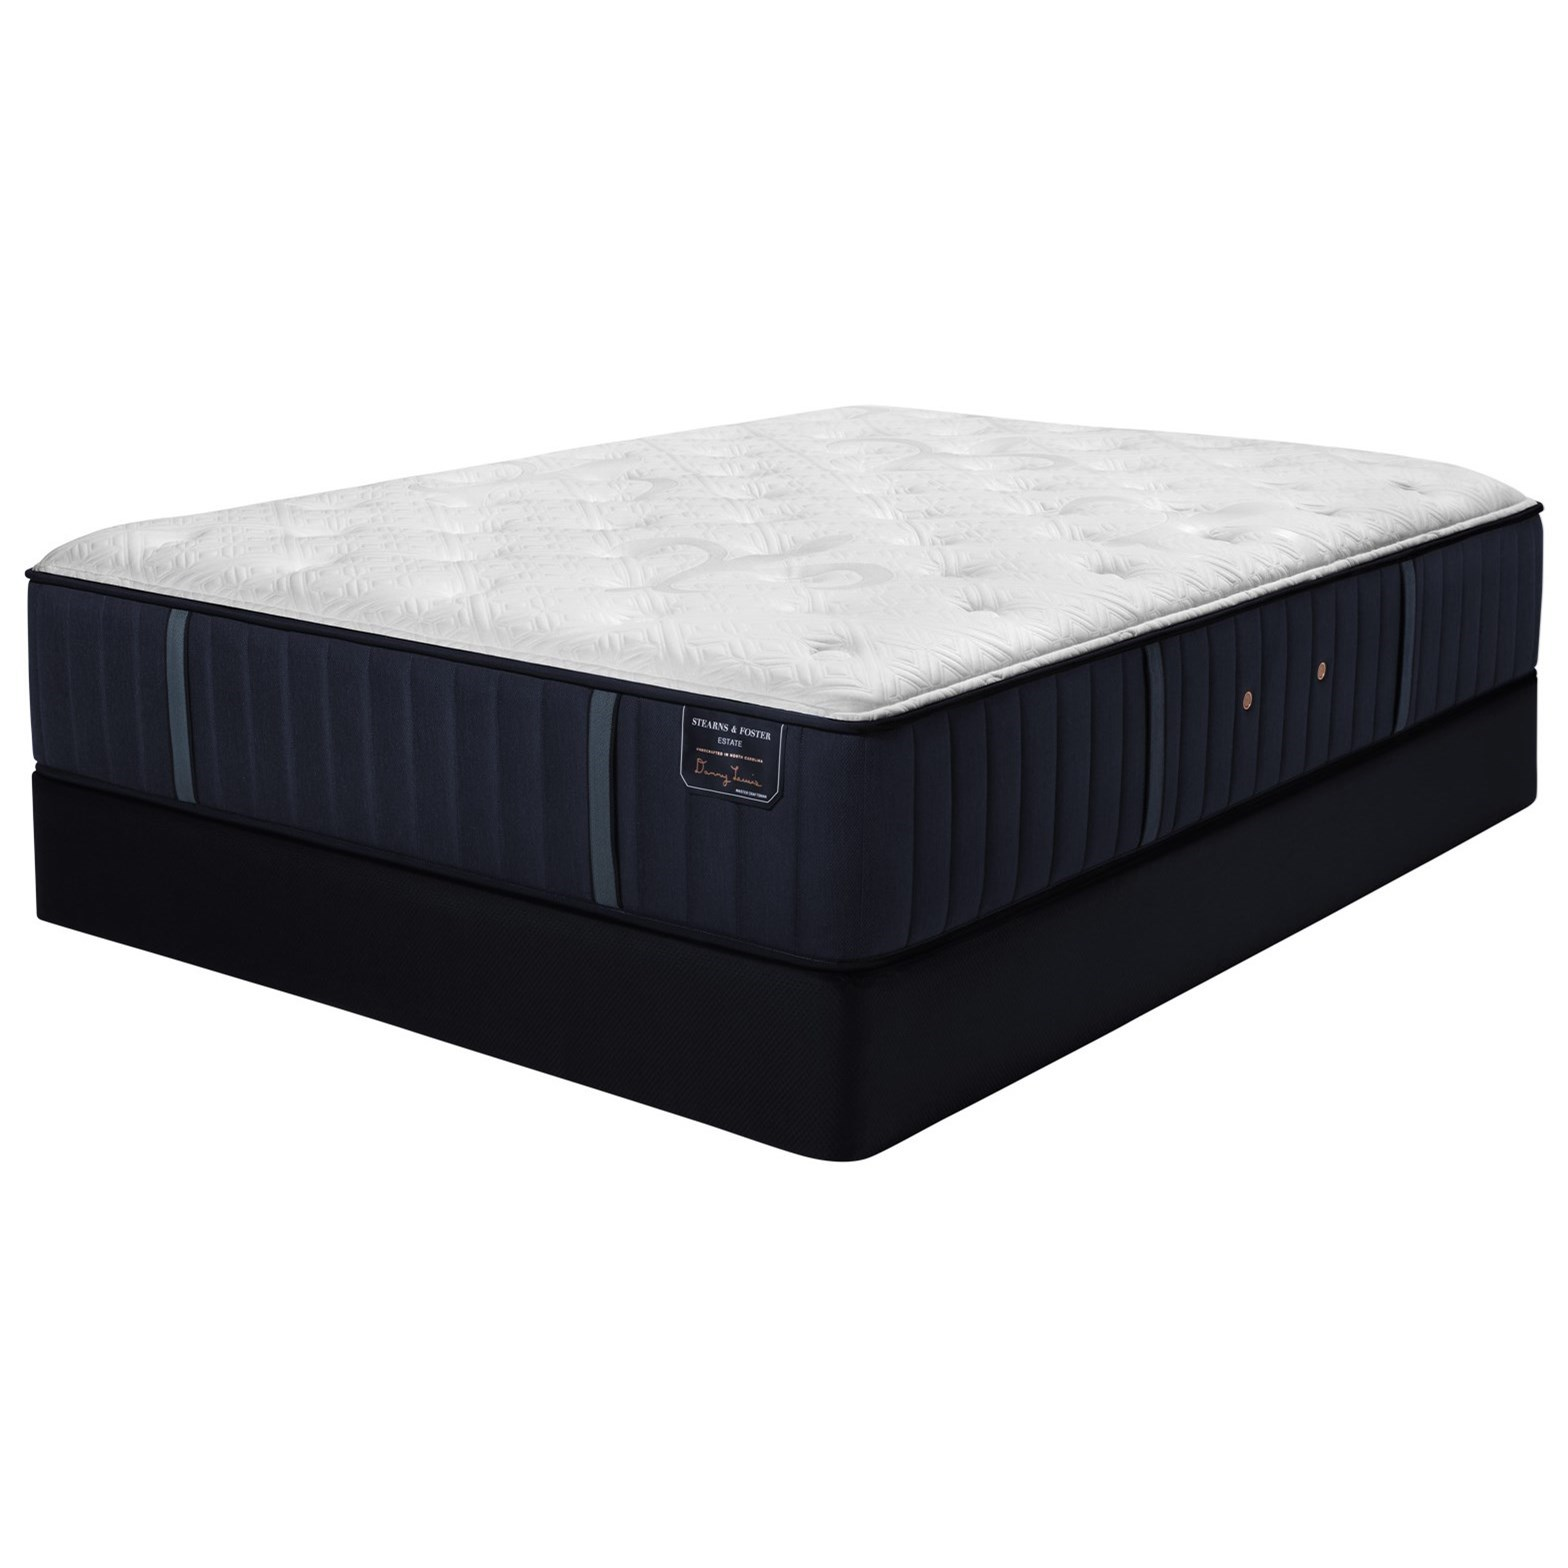 "Twin XL 14"" Luxury Mattress Set"